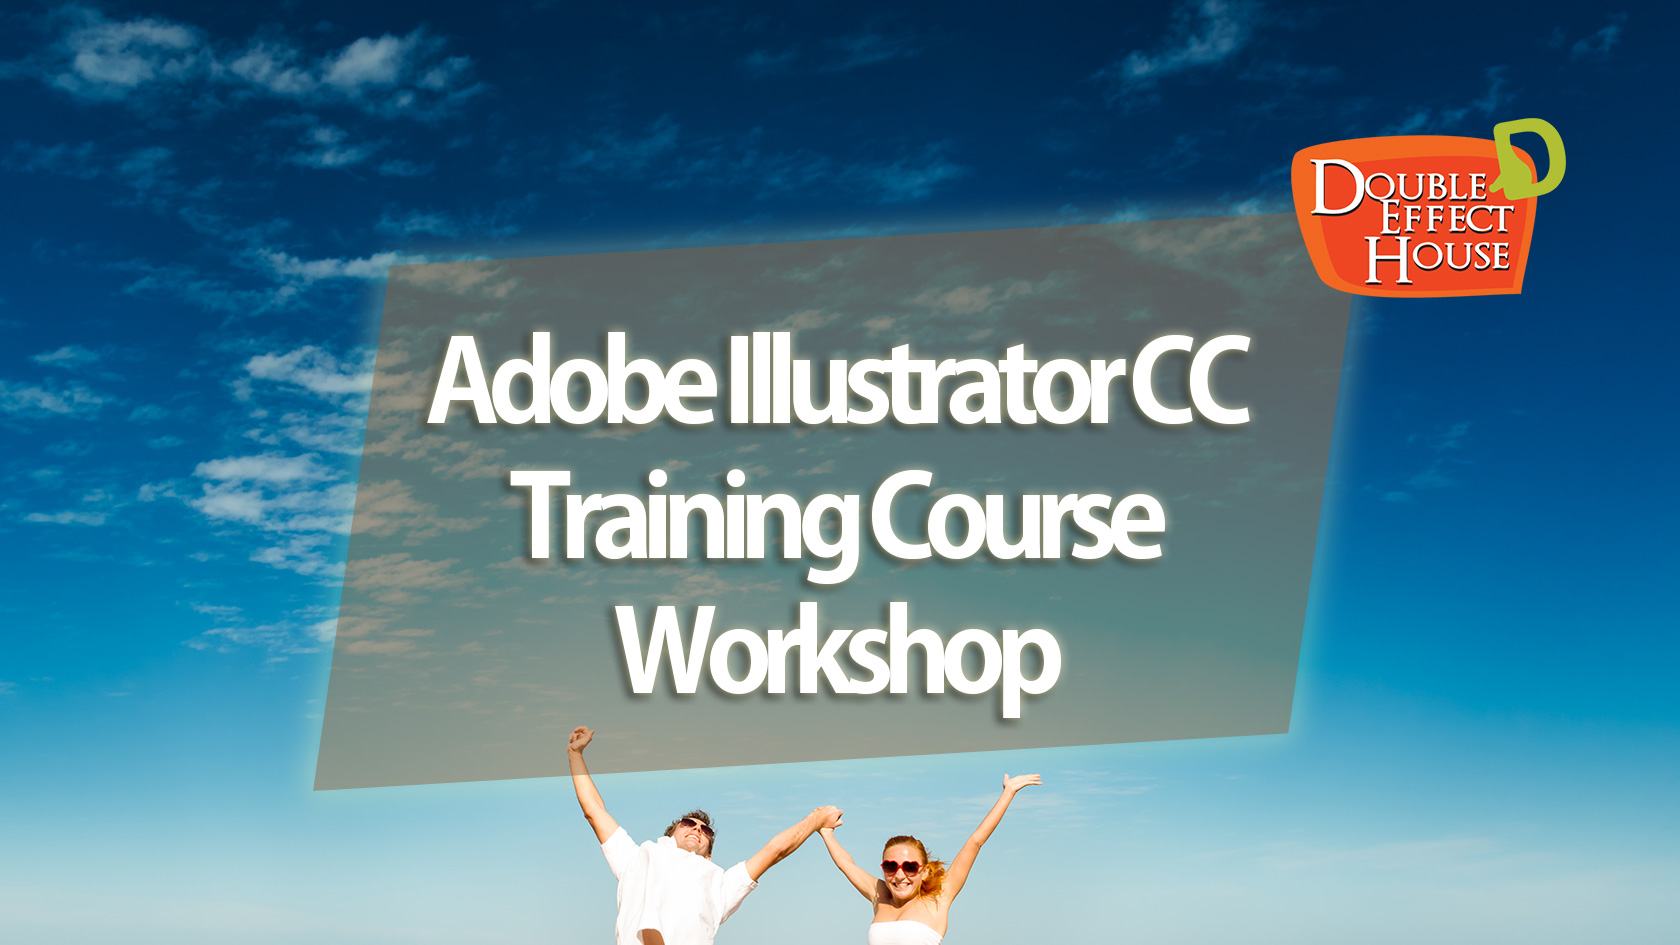 Adobe Illustrator CC Training Course Workshop